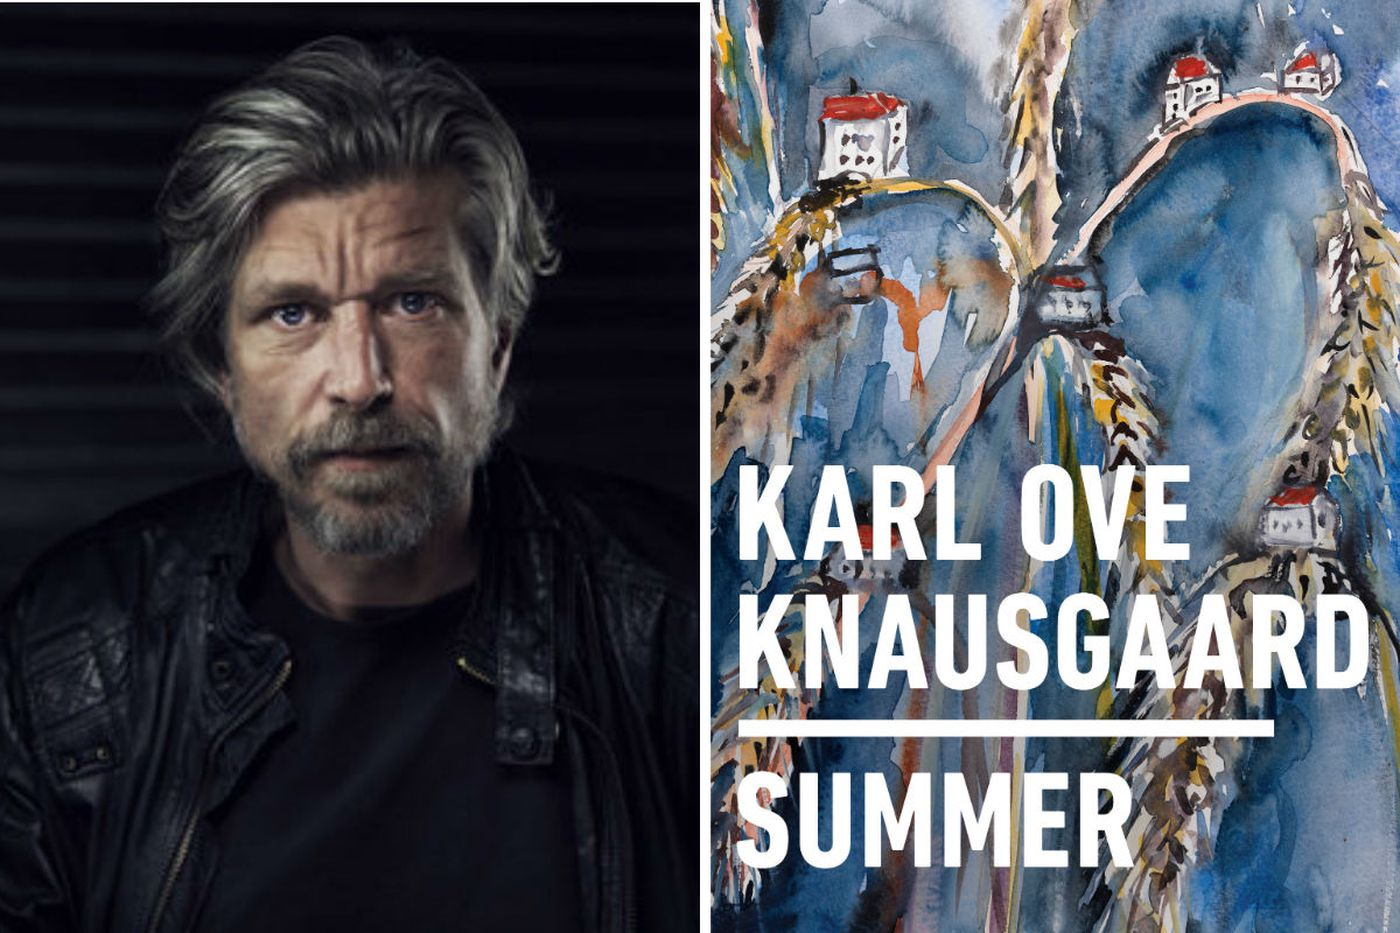 'Summer' by Knausgaard: Final book of four seasons for a daughter